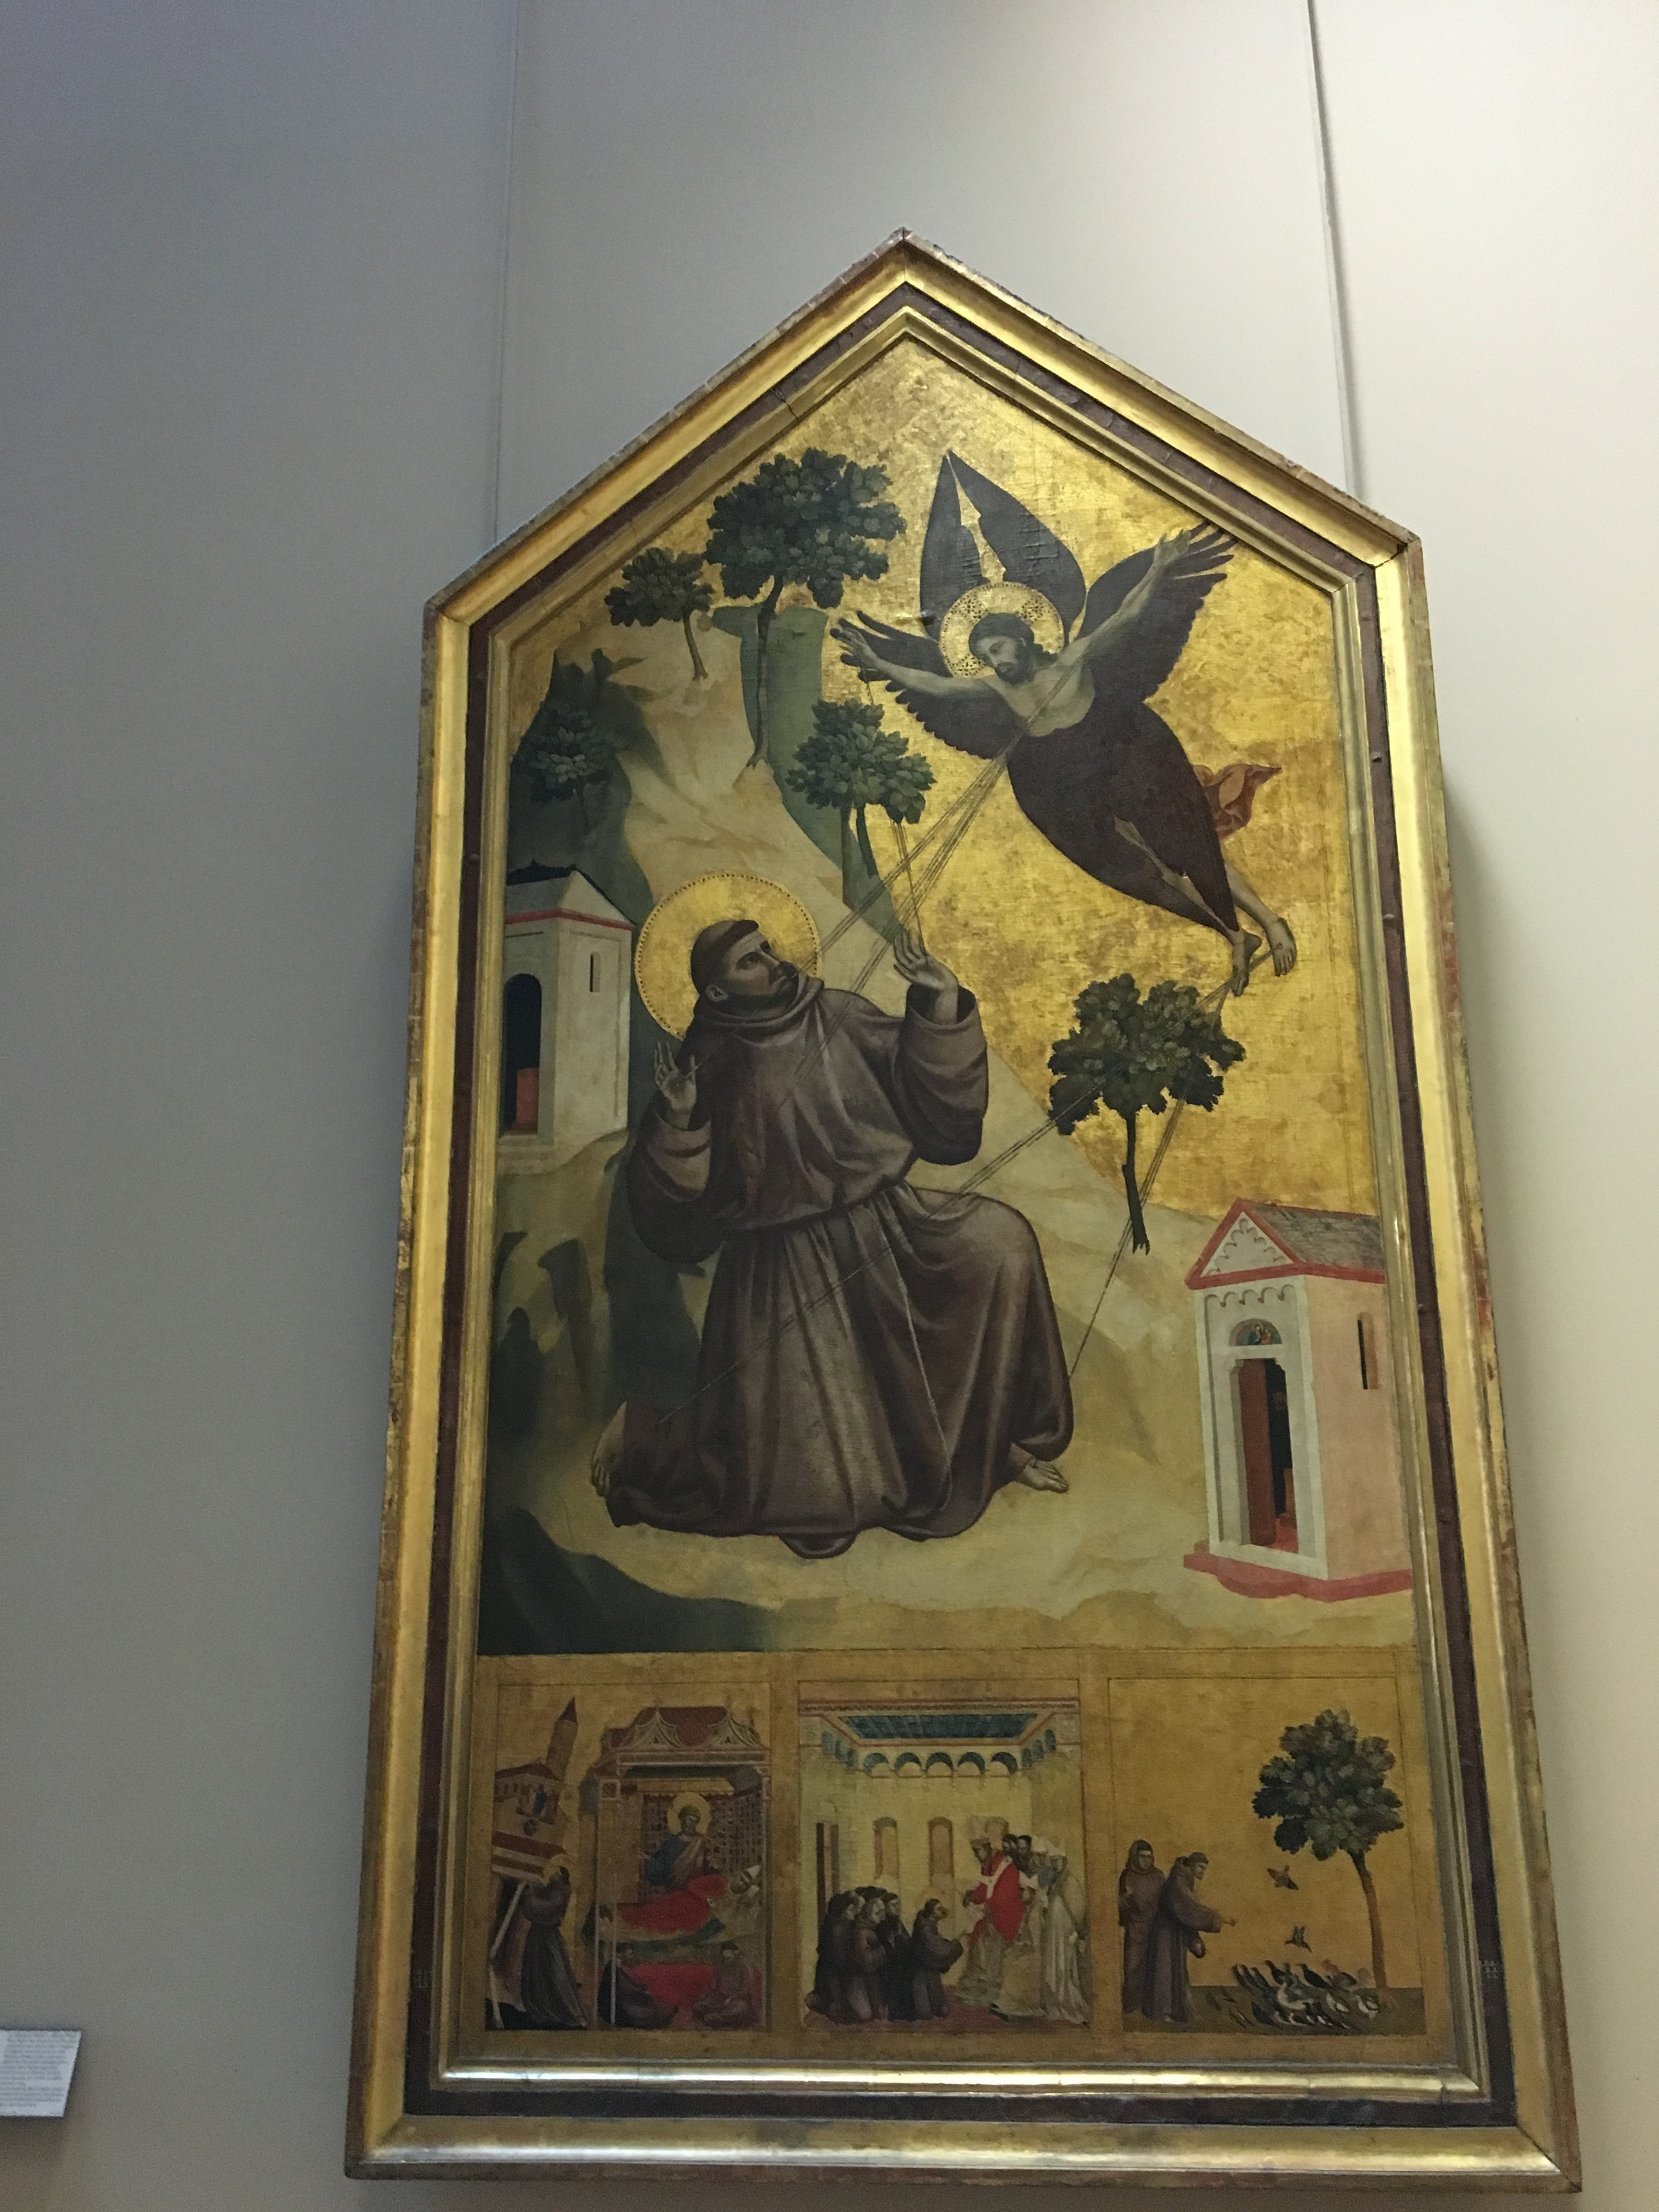 We learned that early Italian religious art often lacked perspective and the development of perspective was just starting with this work by Giotto depicting St Francis.